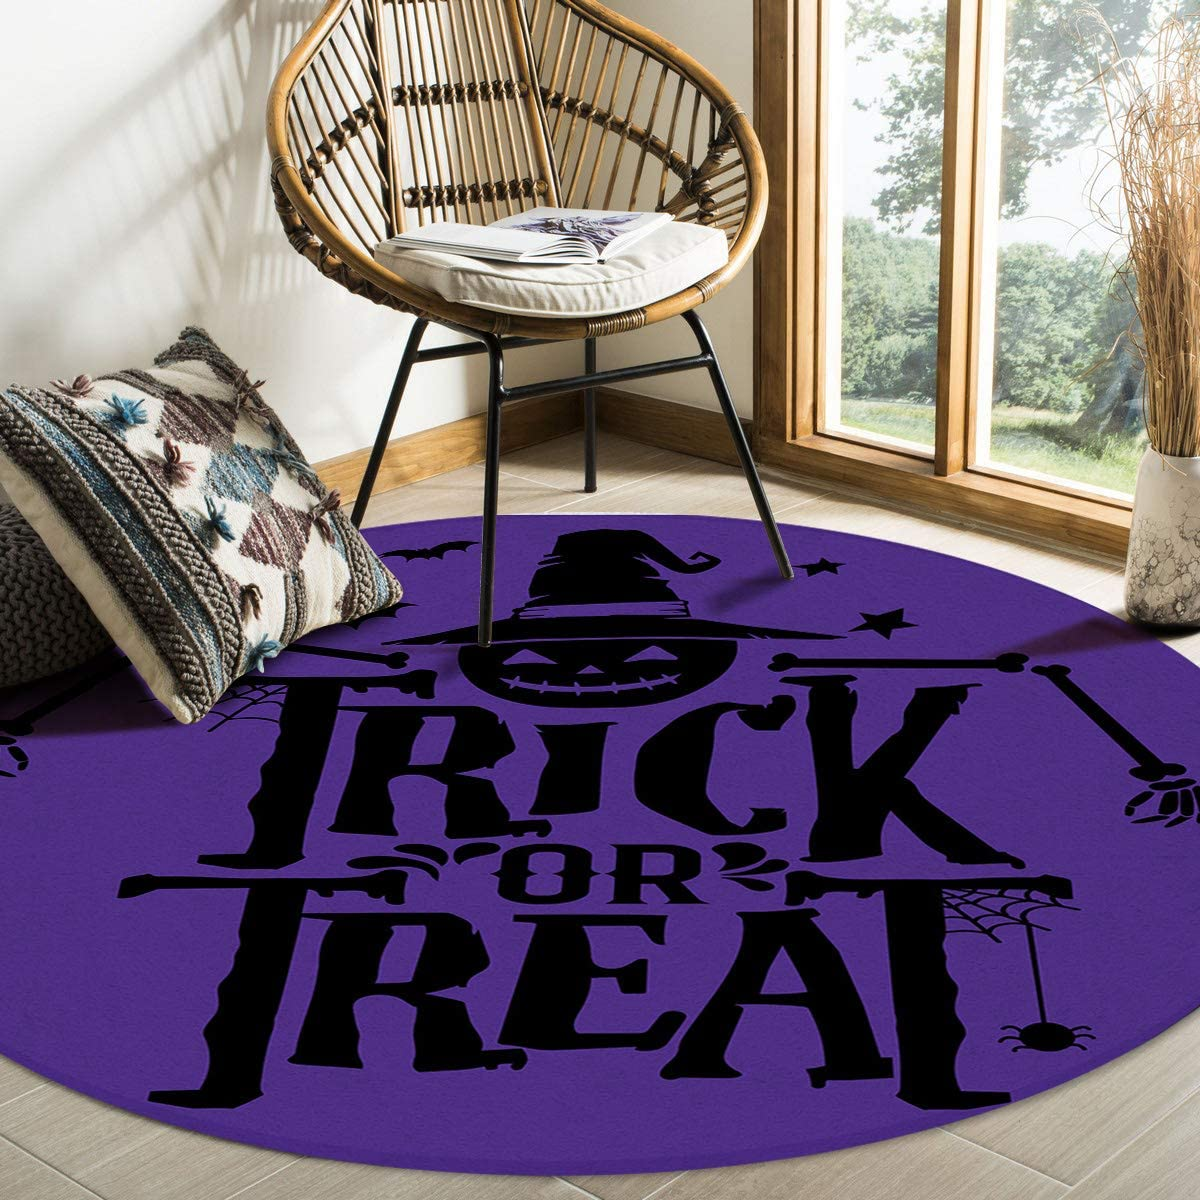 Max 48% OFF HELLOWINK Round Area Rugs 4ft Purple Non-Shed Halloween Pumpkin Indianapolis Mall